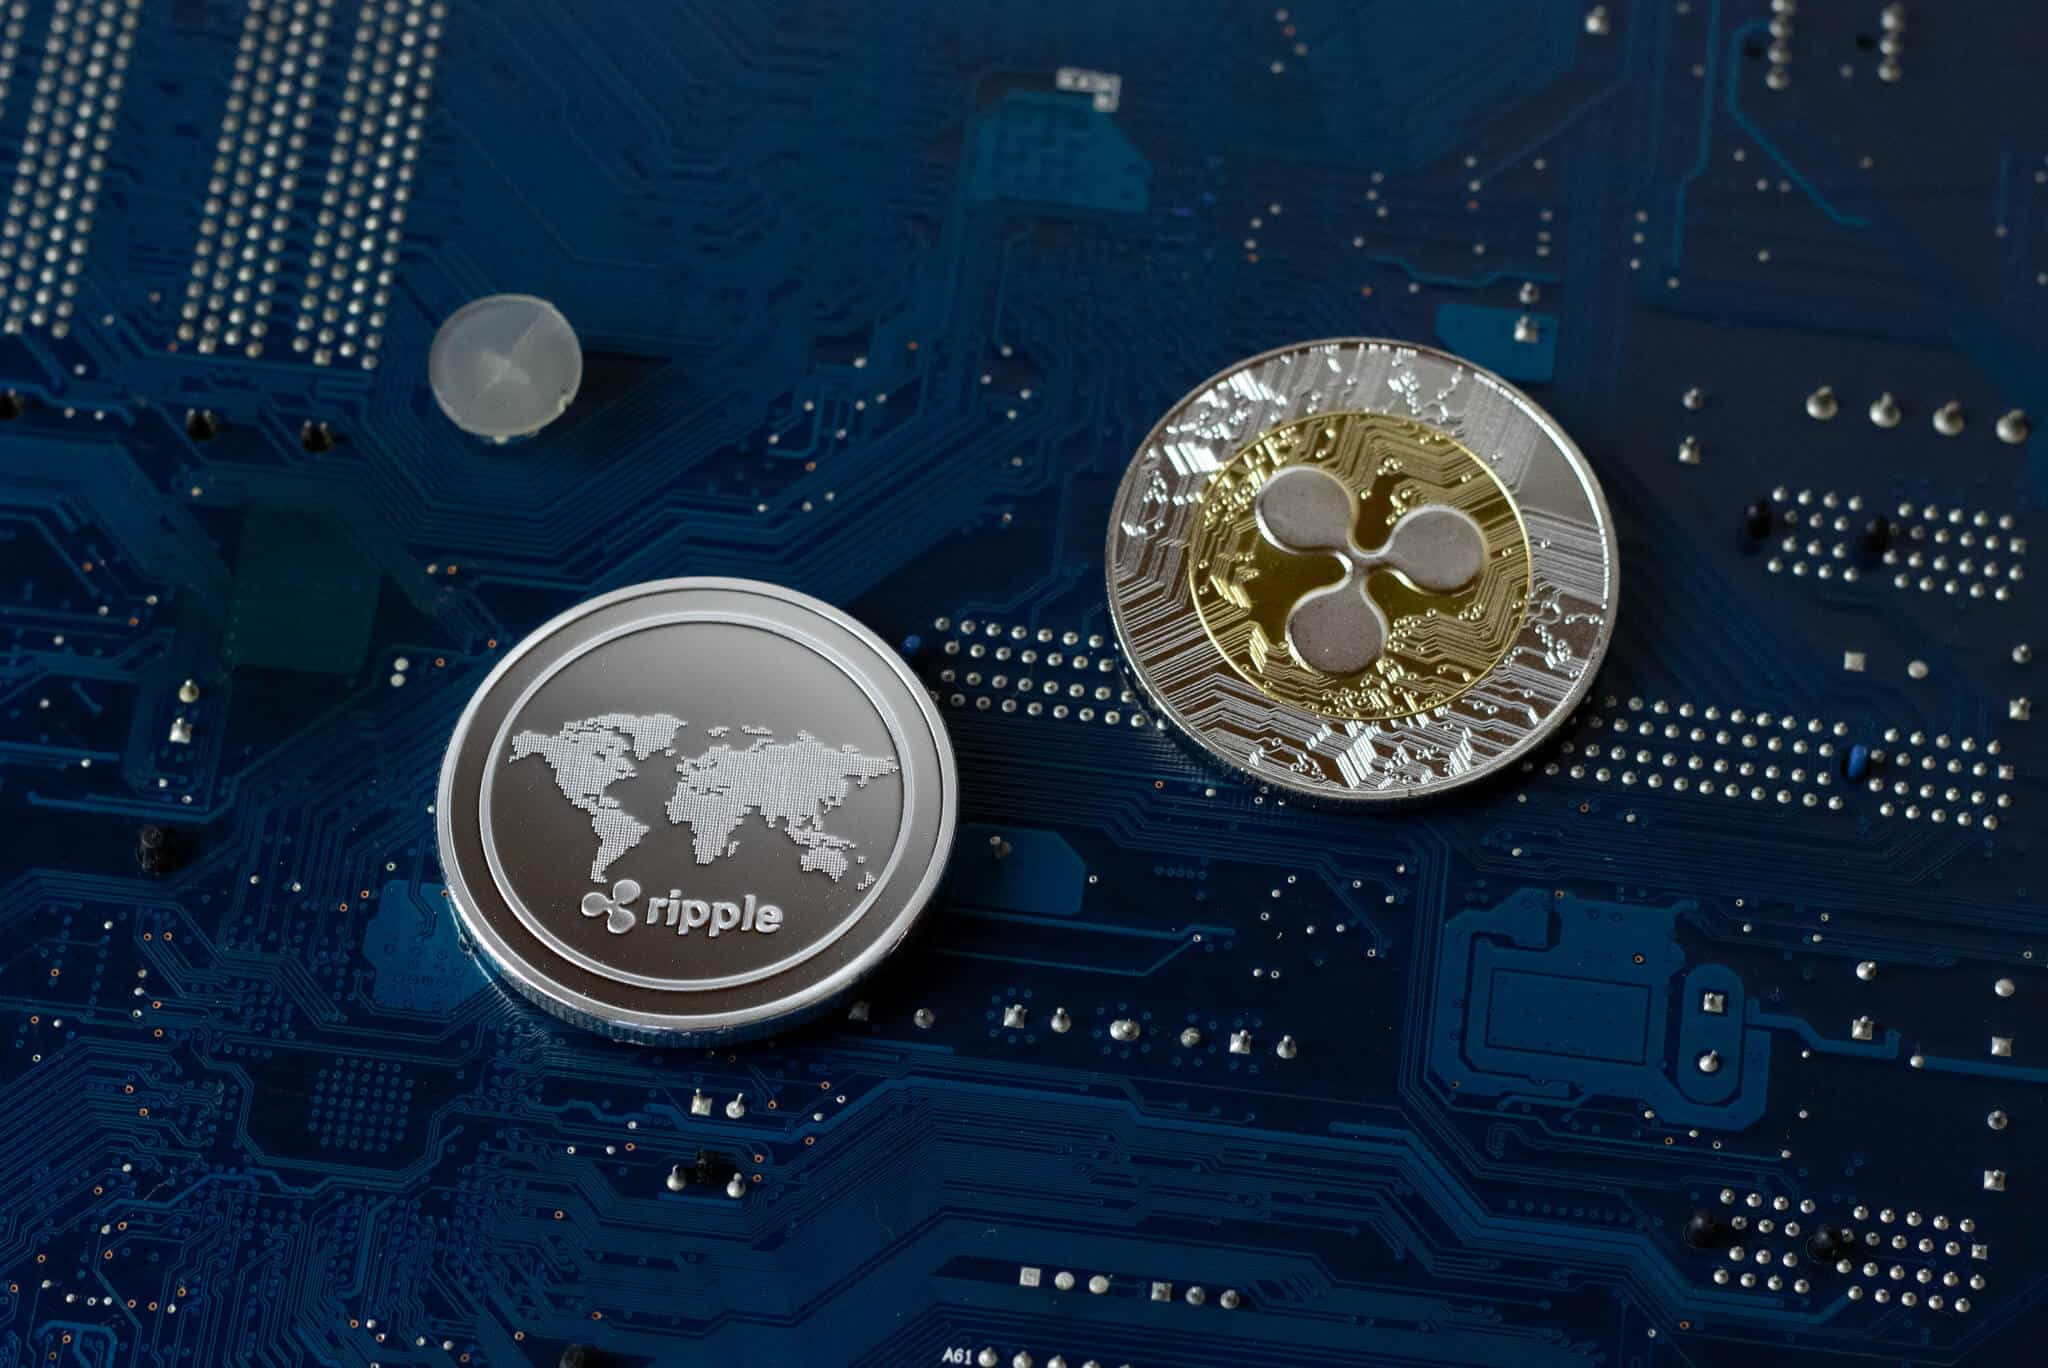 how to buy into ripple cryptocurrency